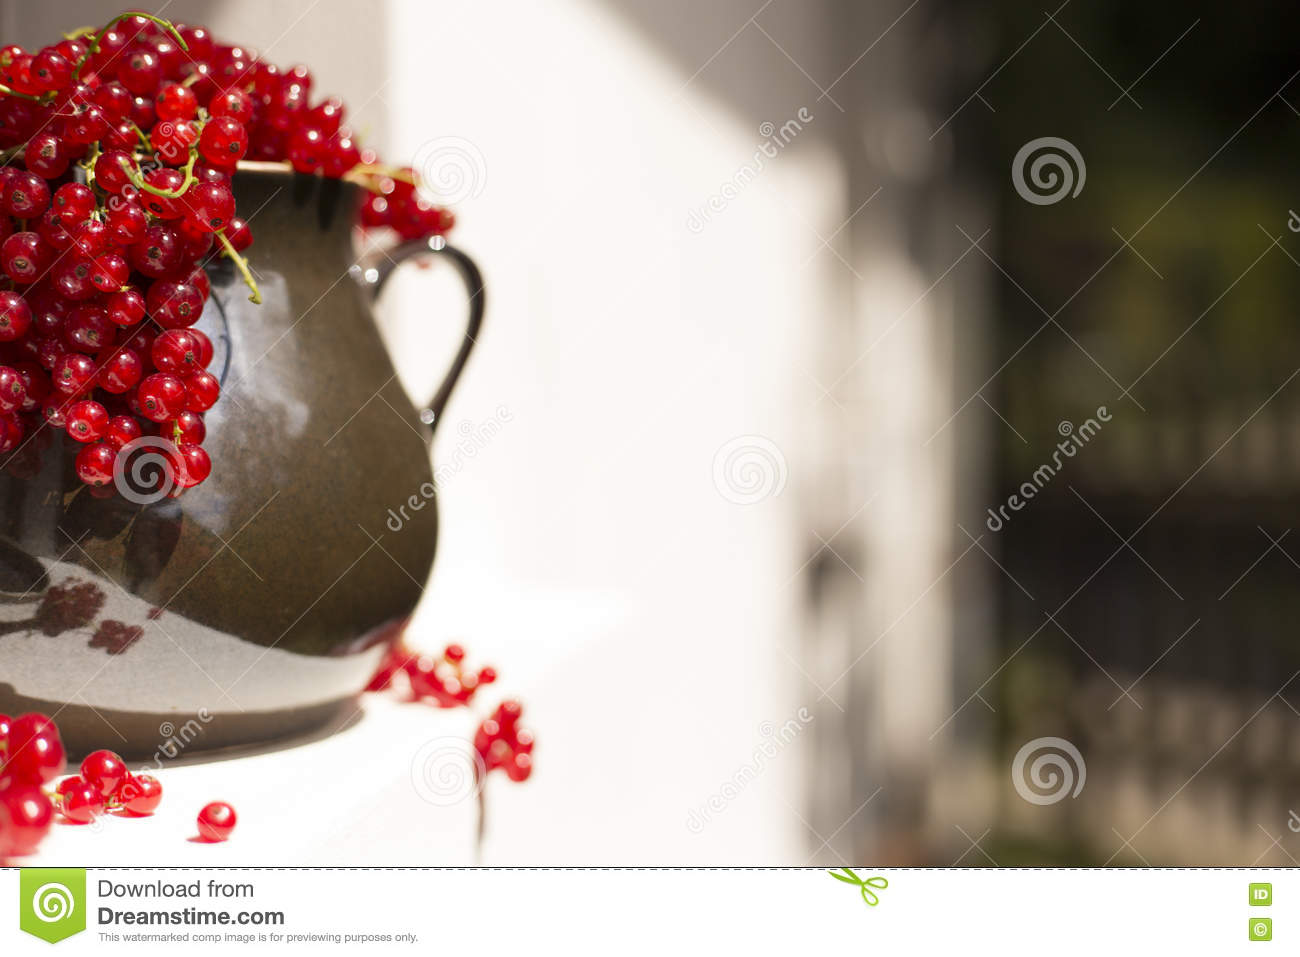 Detail of Pitcher/jug of redcurrant on a direct sunlight on a window